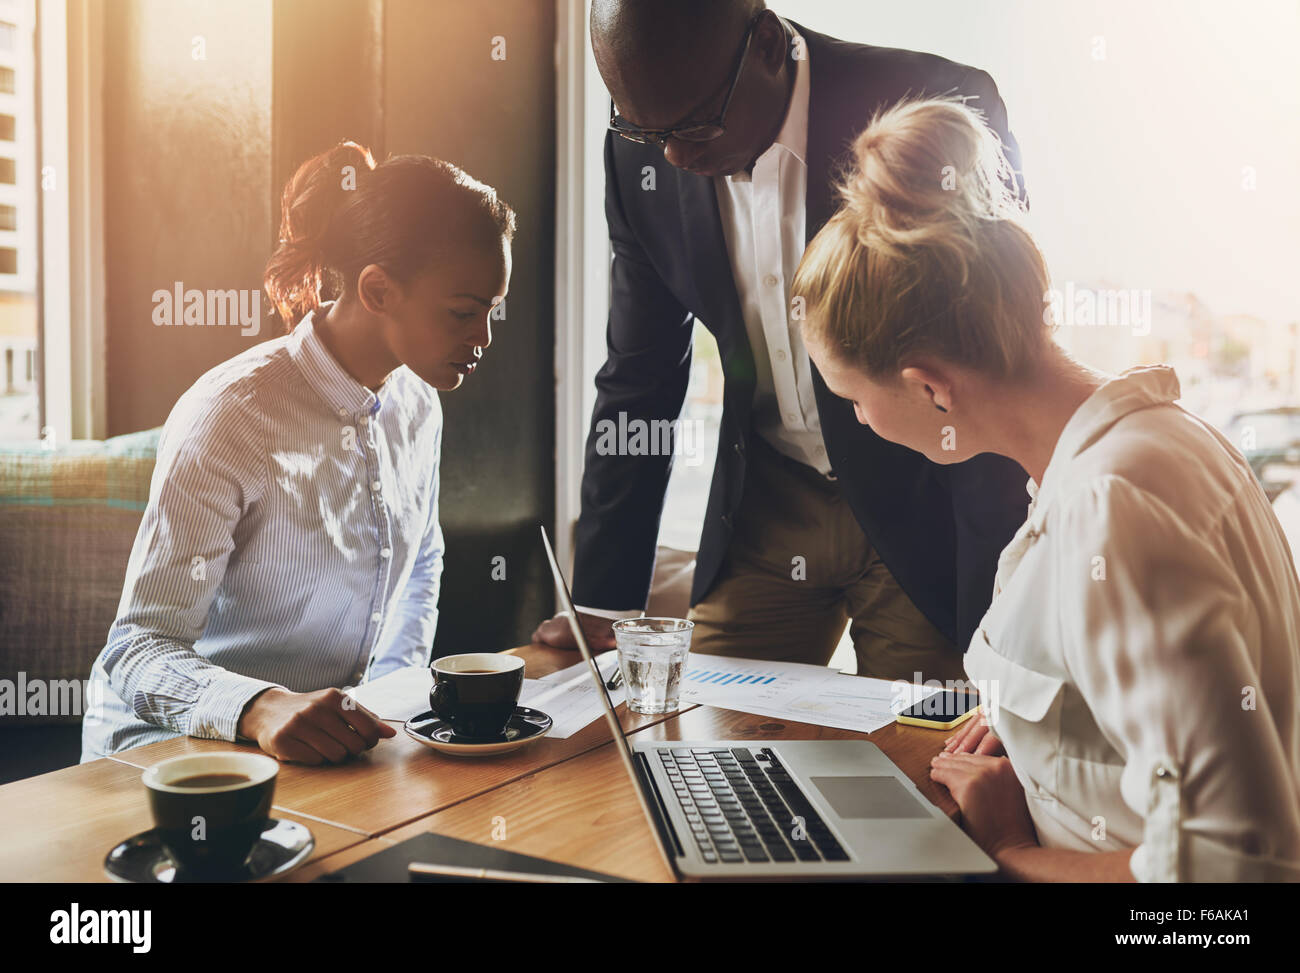 Groupe de gens d'affaires, entrepreneur, homme d'affaires noir concept expliquant business plan Photo Stock